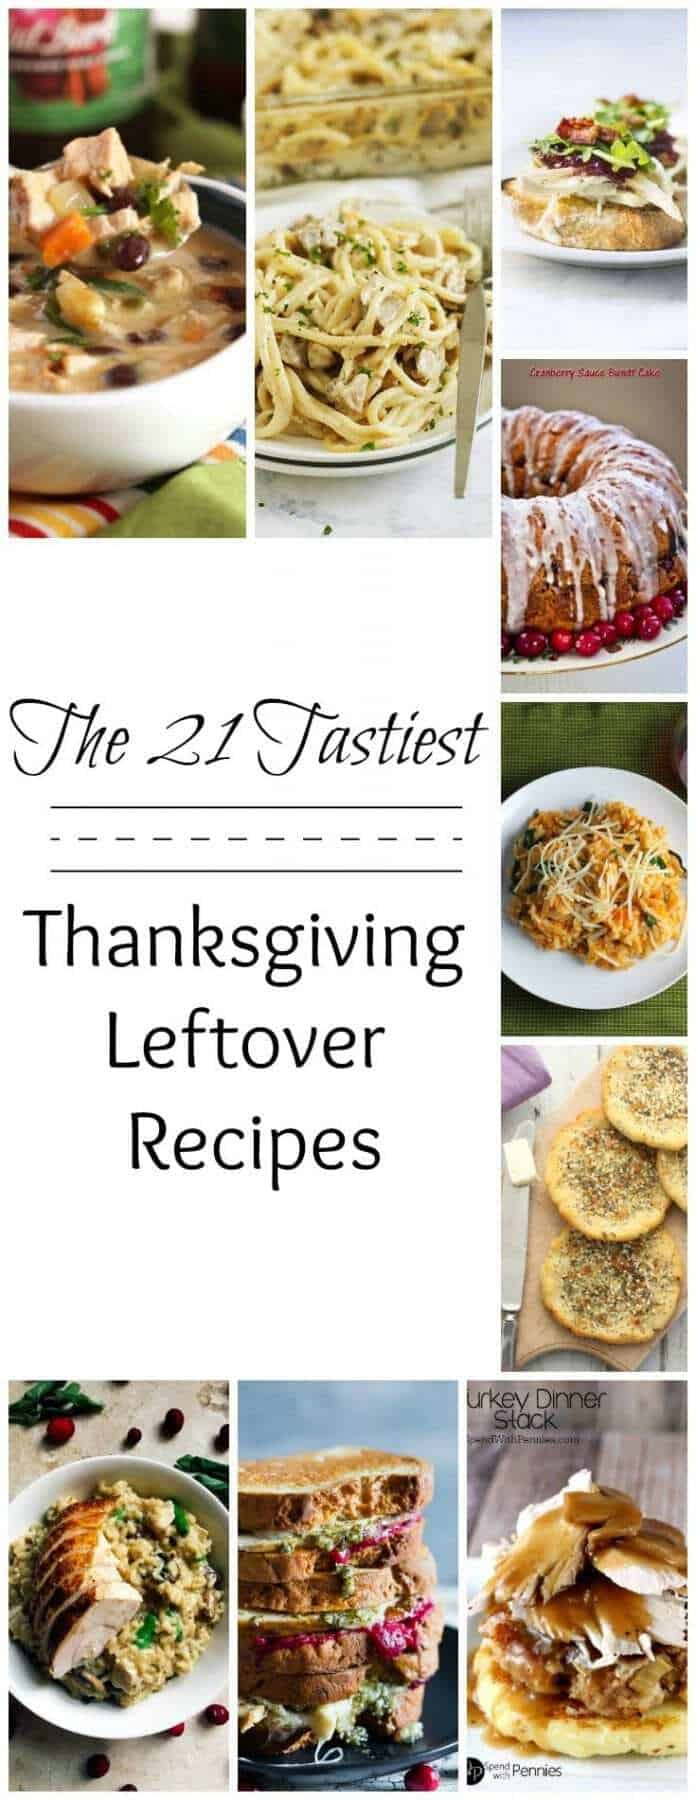 the-21-tastiest-thanksgiving-leftover-recipes